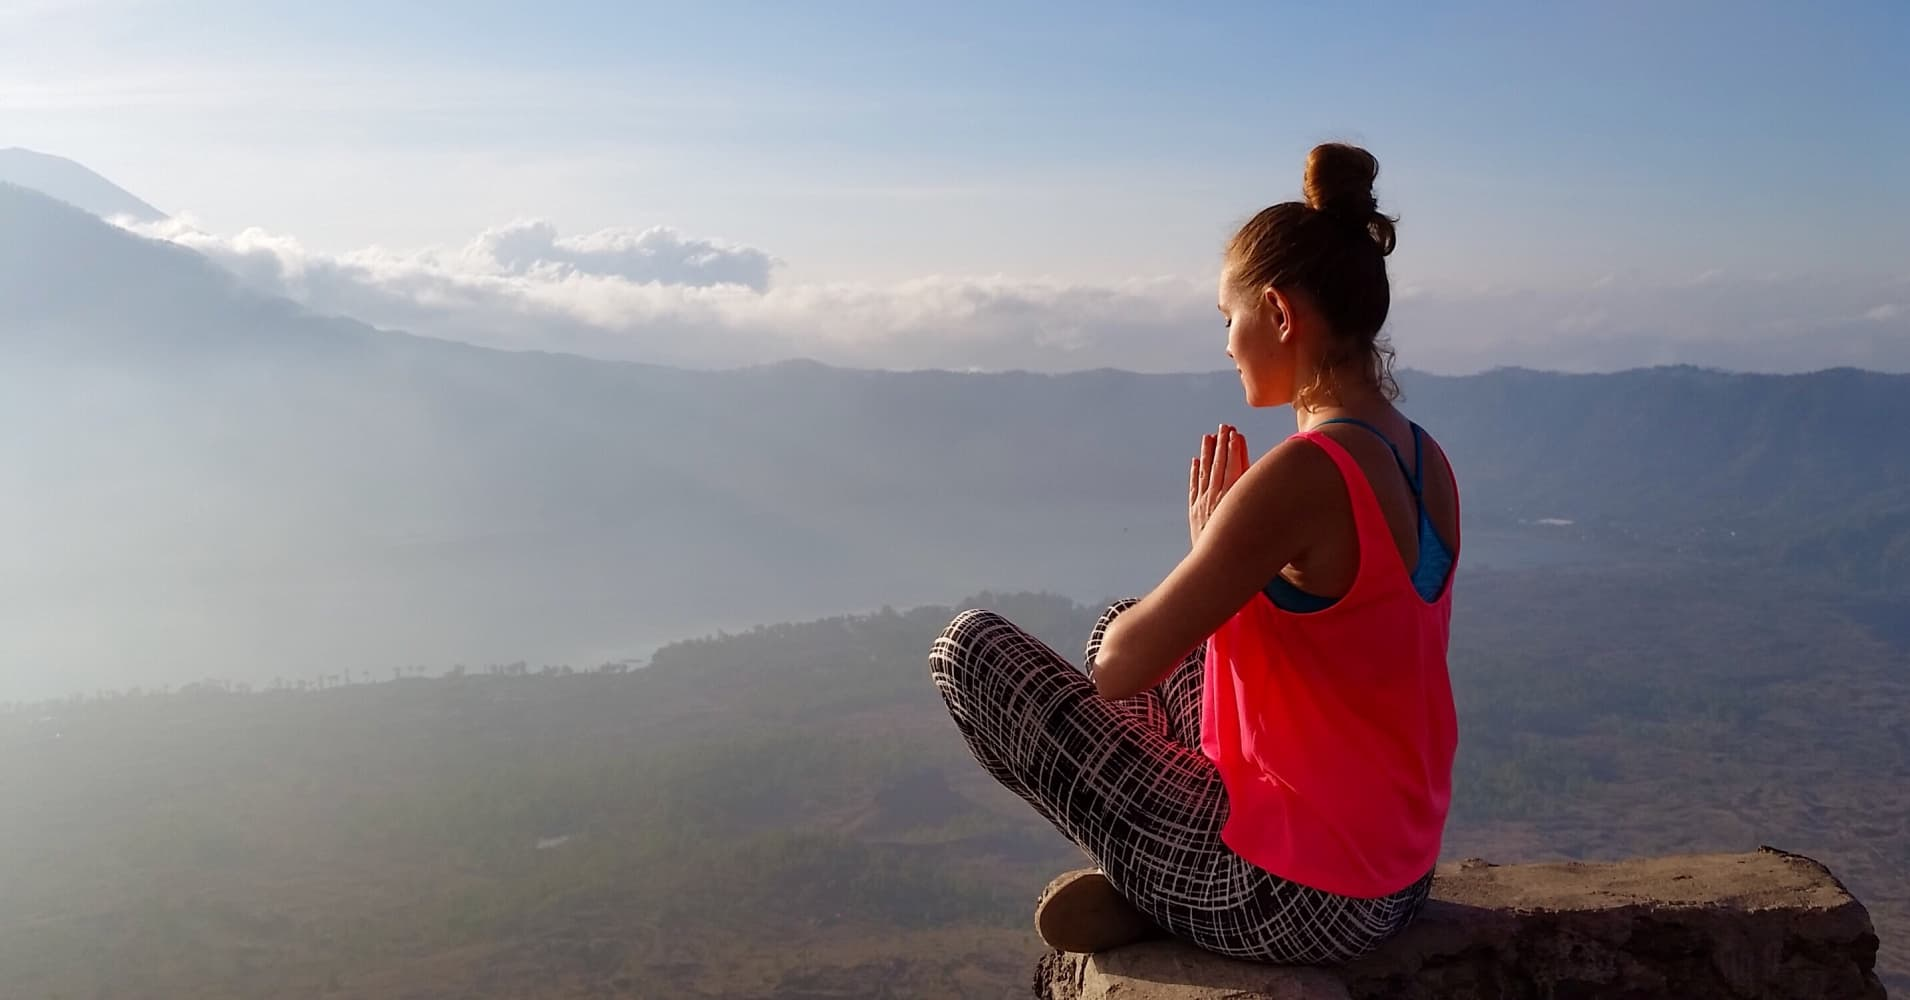 Meditation at the sunrise at the top of mount Batur in Bali, Indonesia